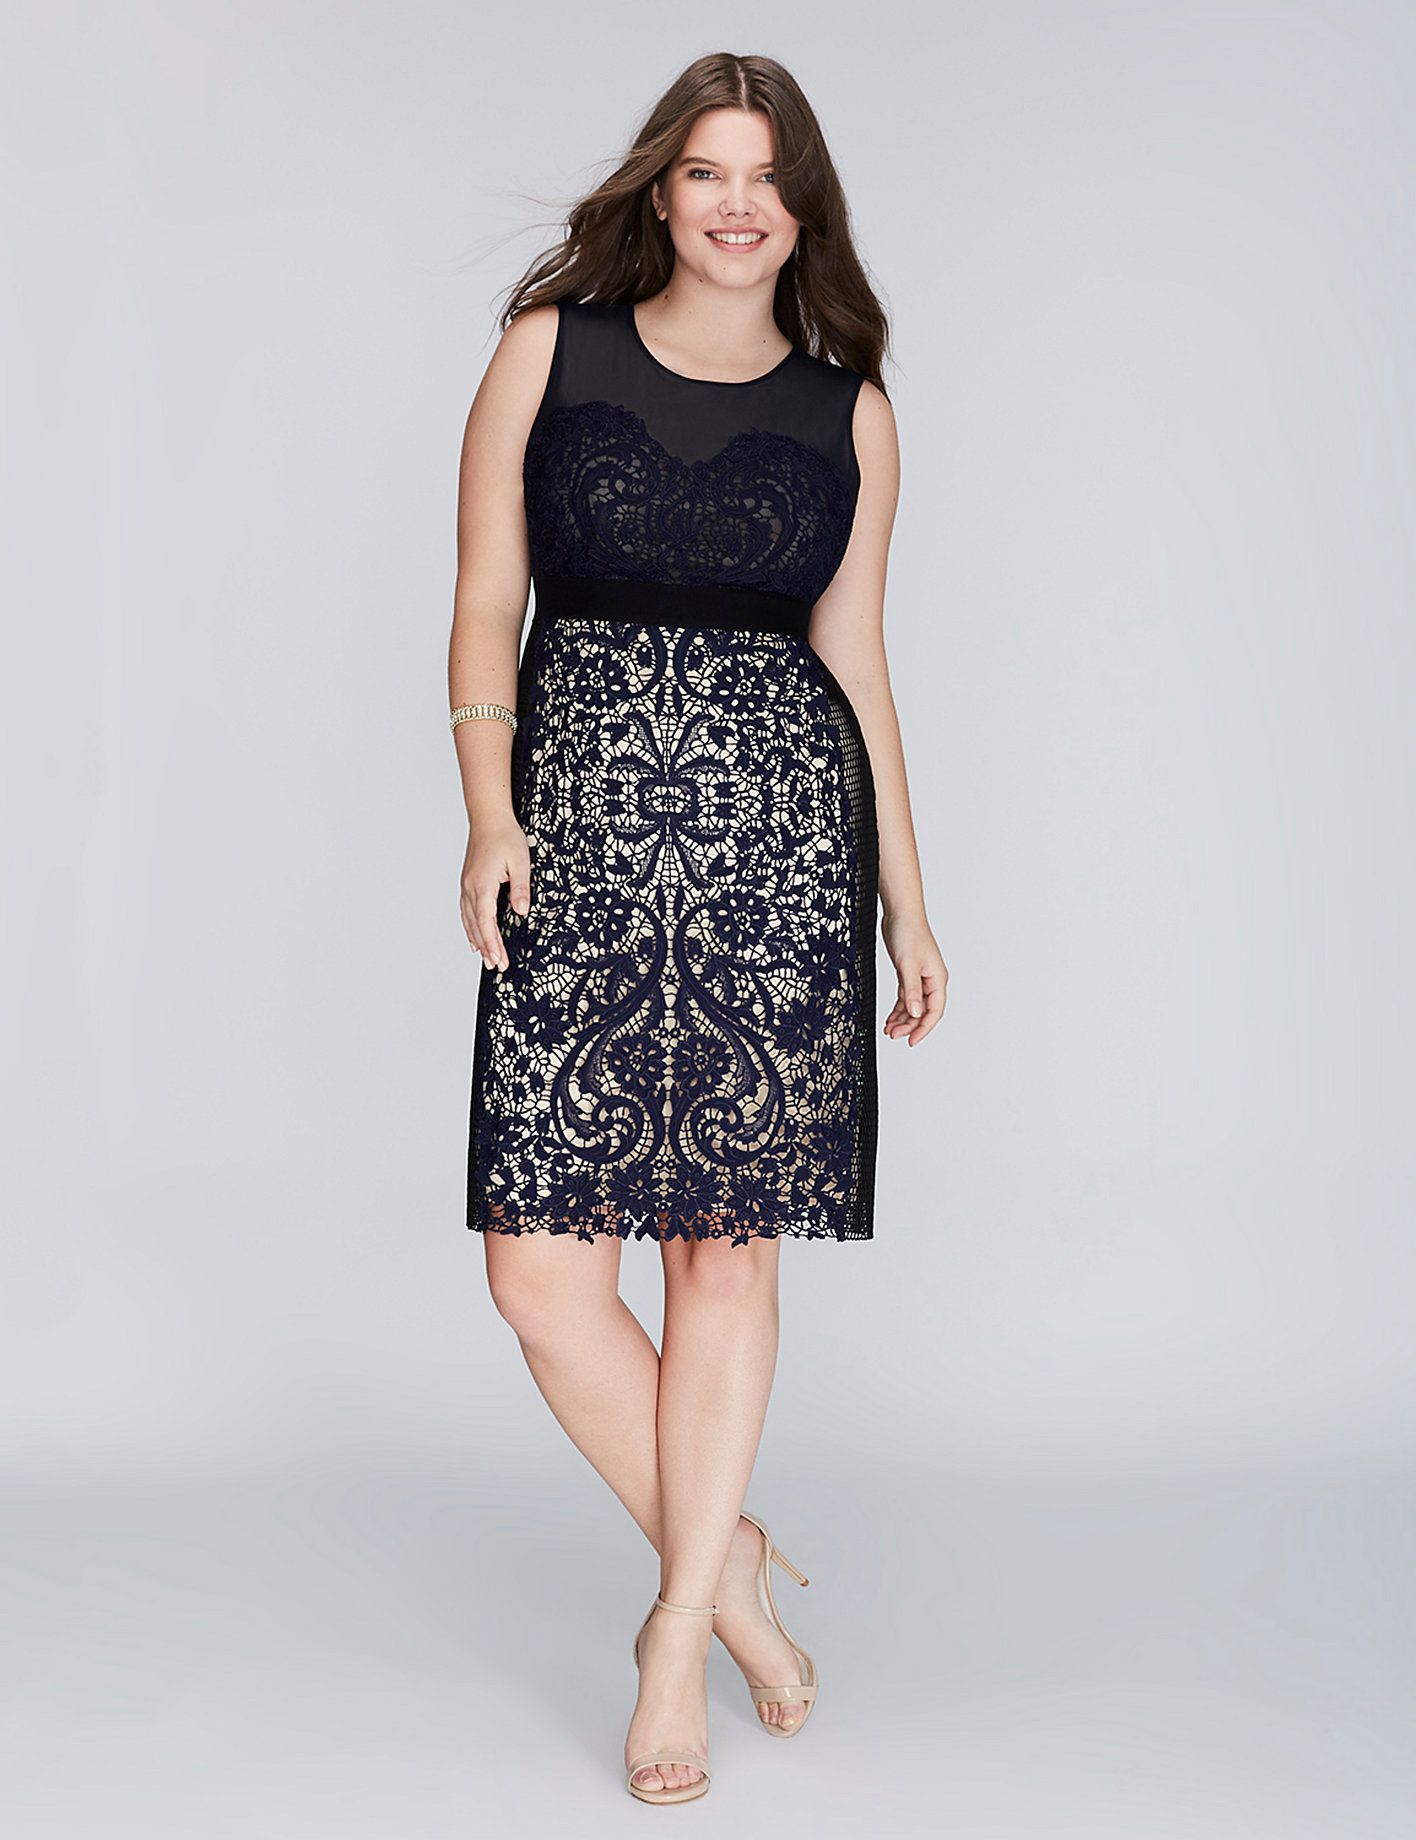 93440fb9c102 Clearance Plus Size Womens Dresses   Skirts Sale